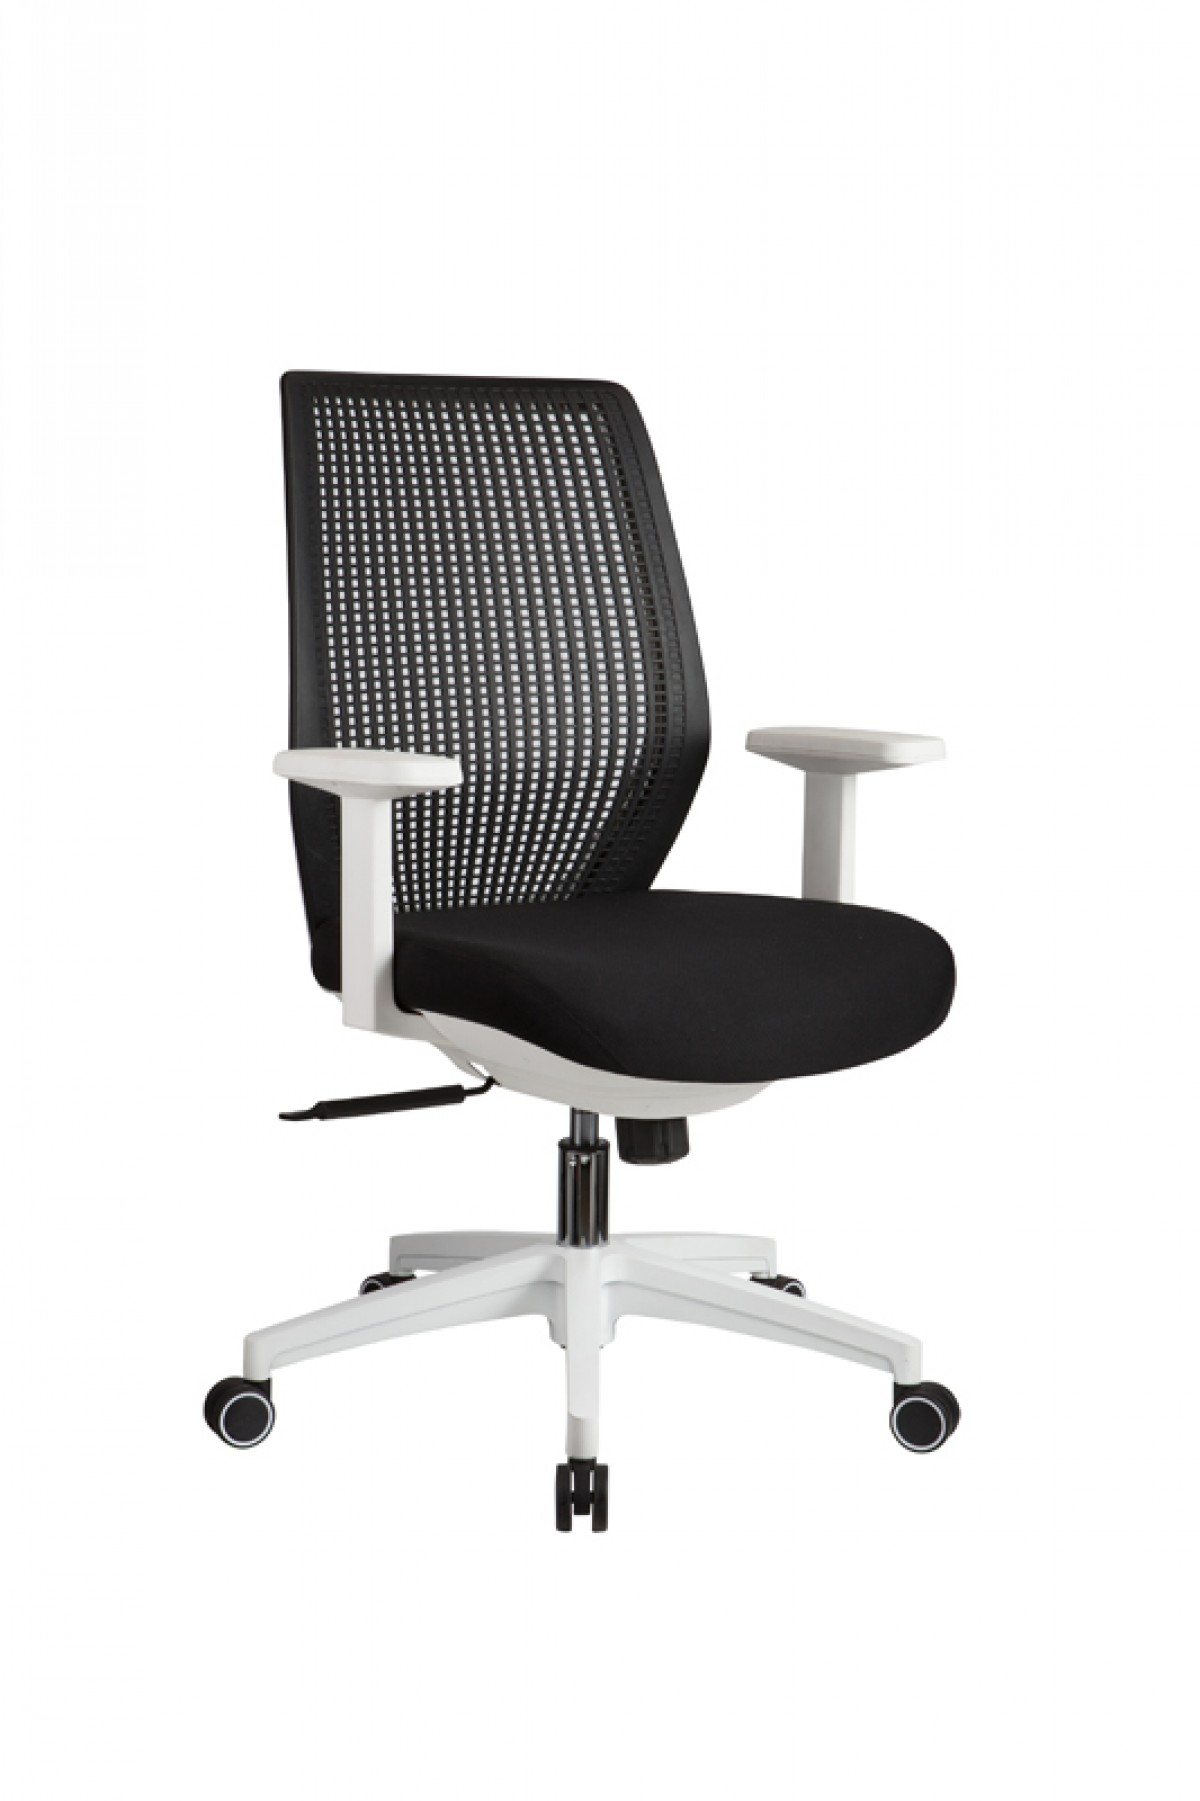 Modrest Bayer Modern Black  White Office Chair  Office